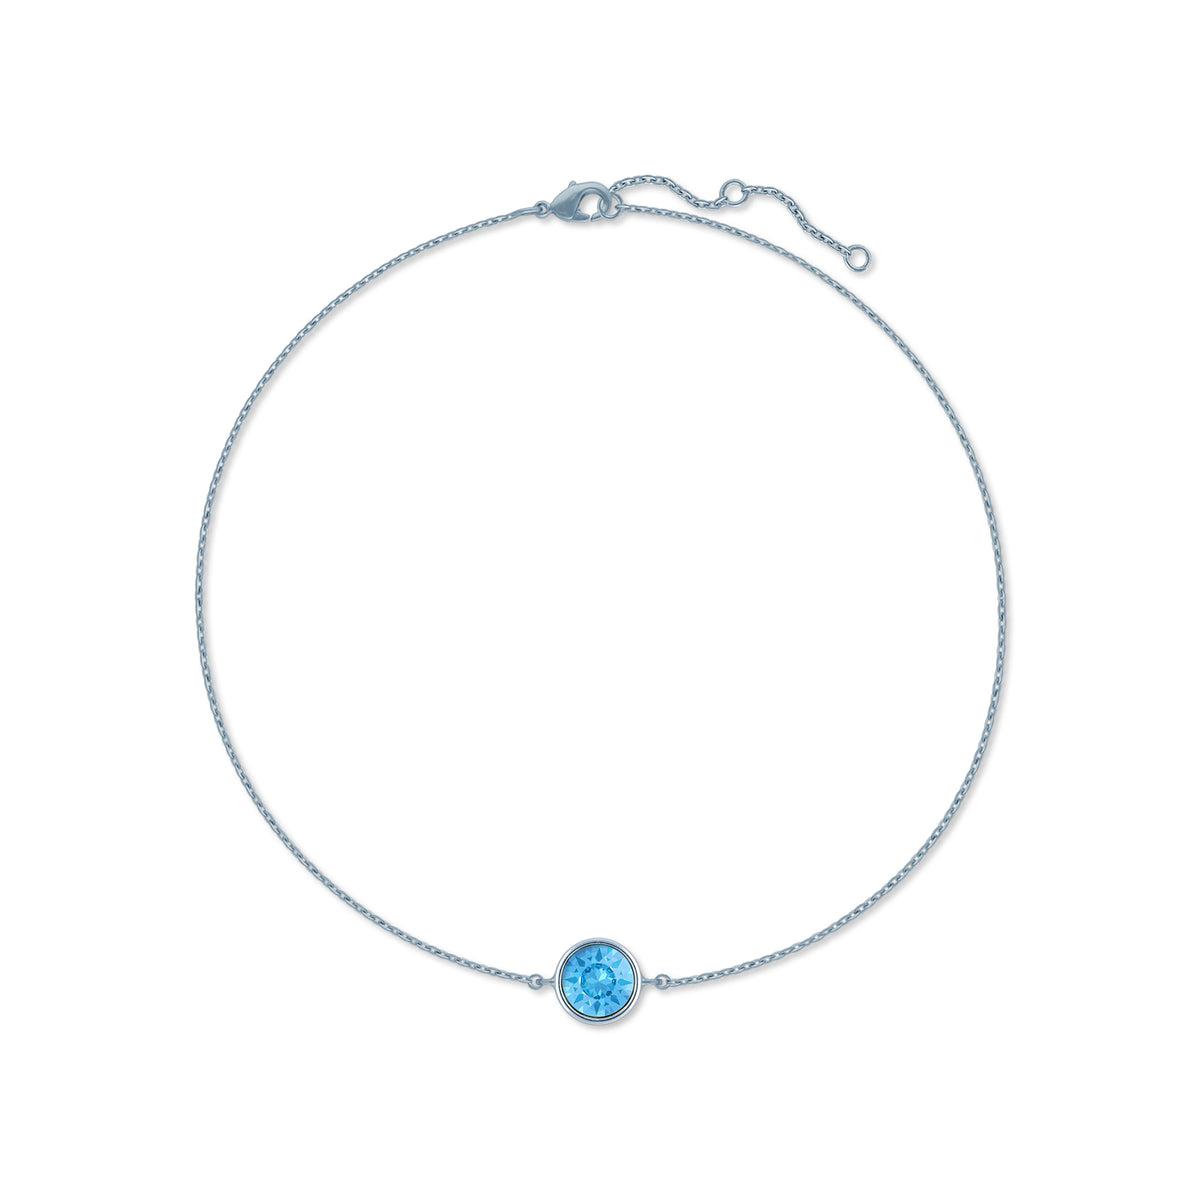 Harley Chain Bracelet with Blue Aquamarine Round Crystals from Swarovski Silver Toned Rhodium Plated - Ed Heart